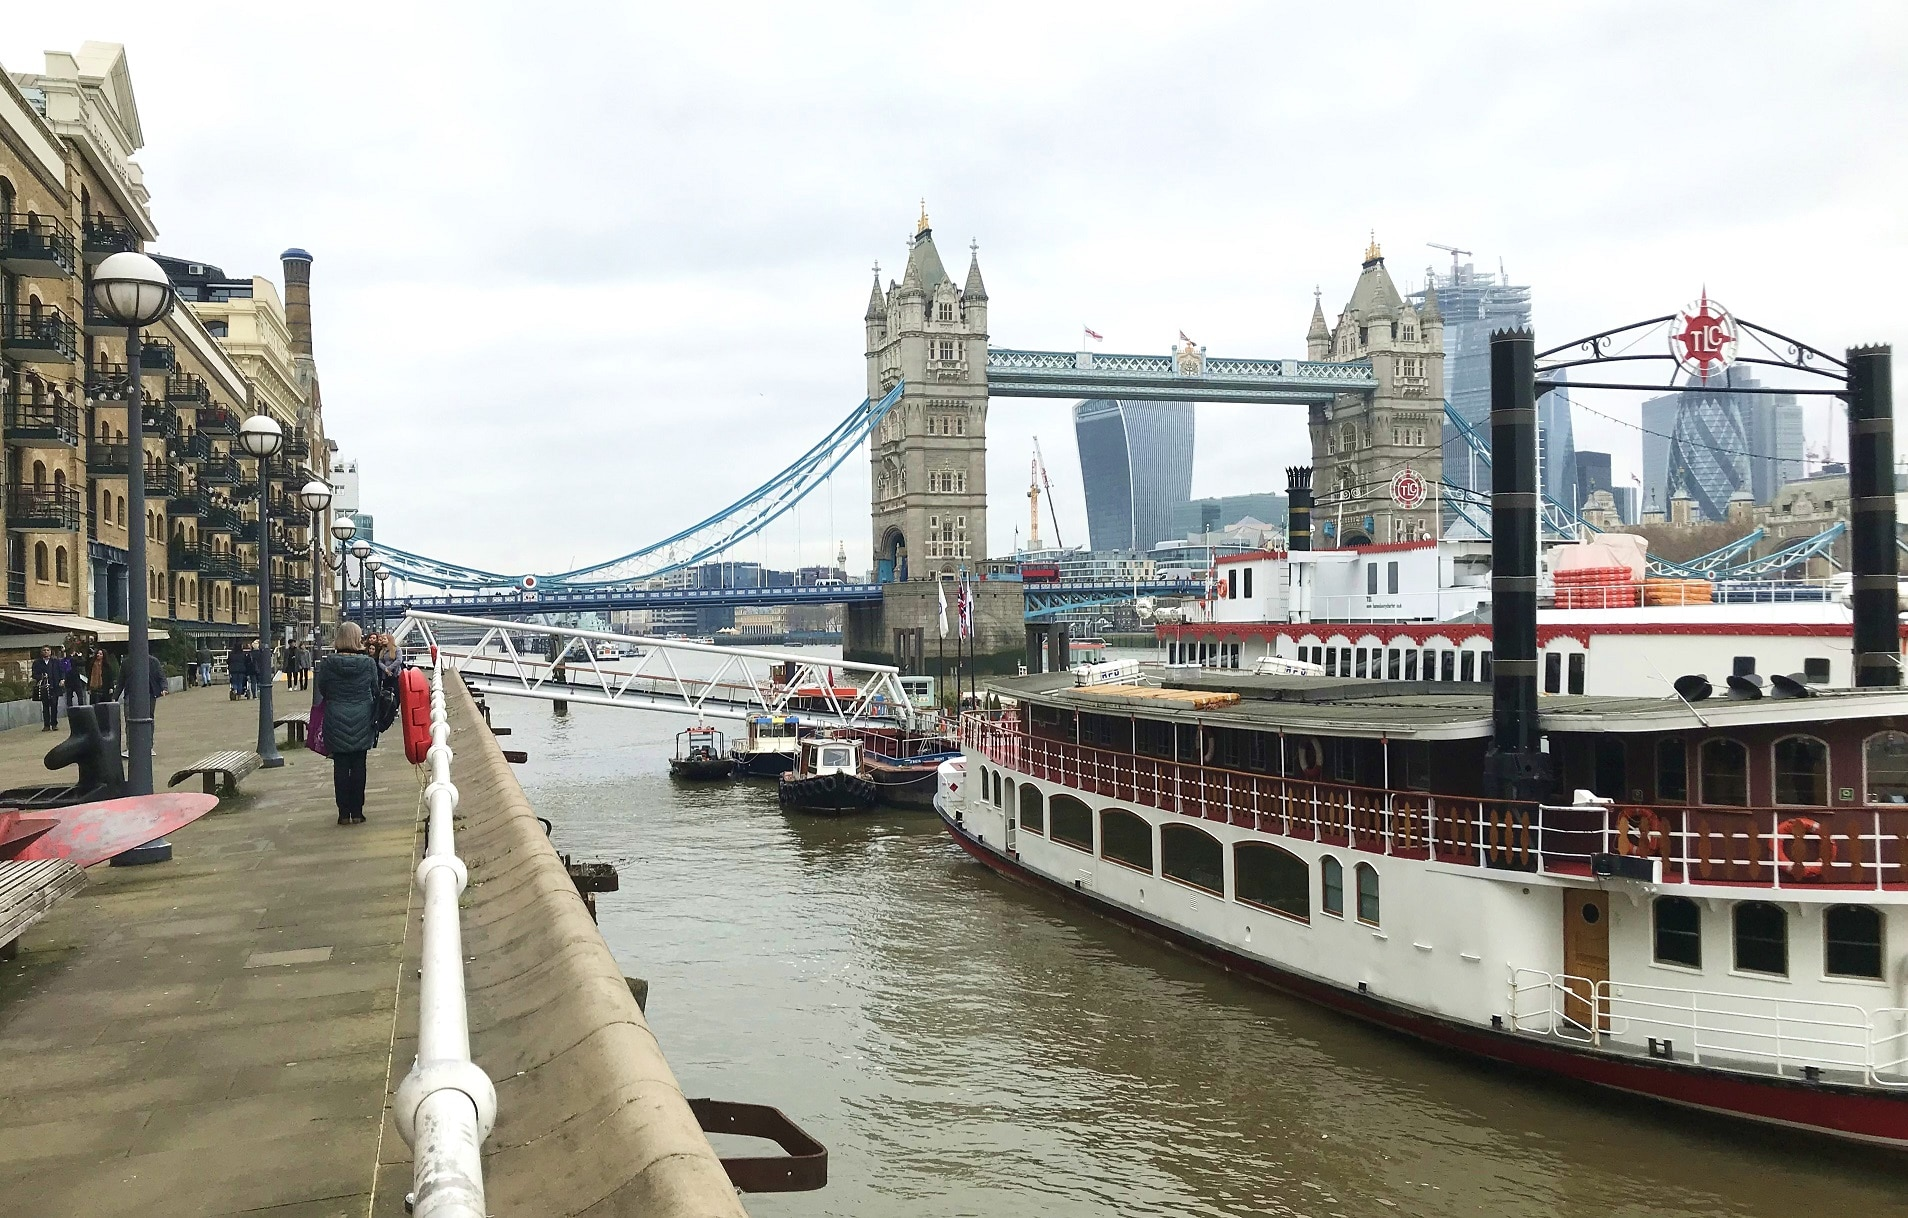 Take in the view from Butler's Wharf to Tower Bridge